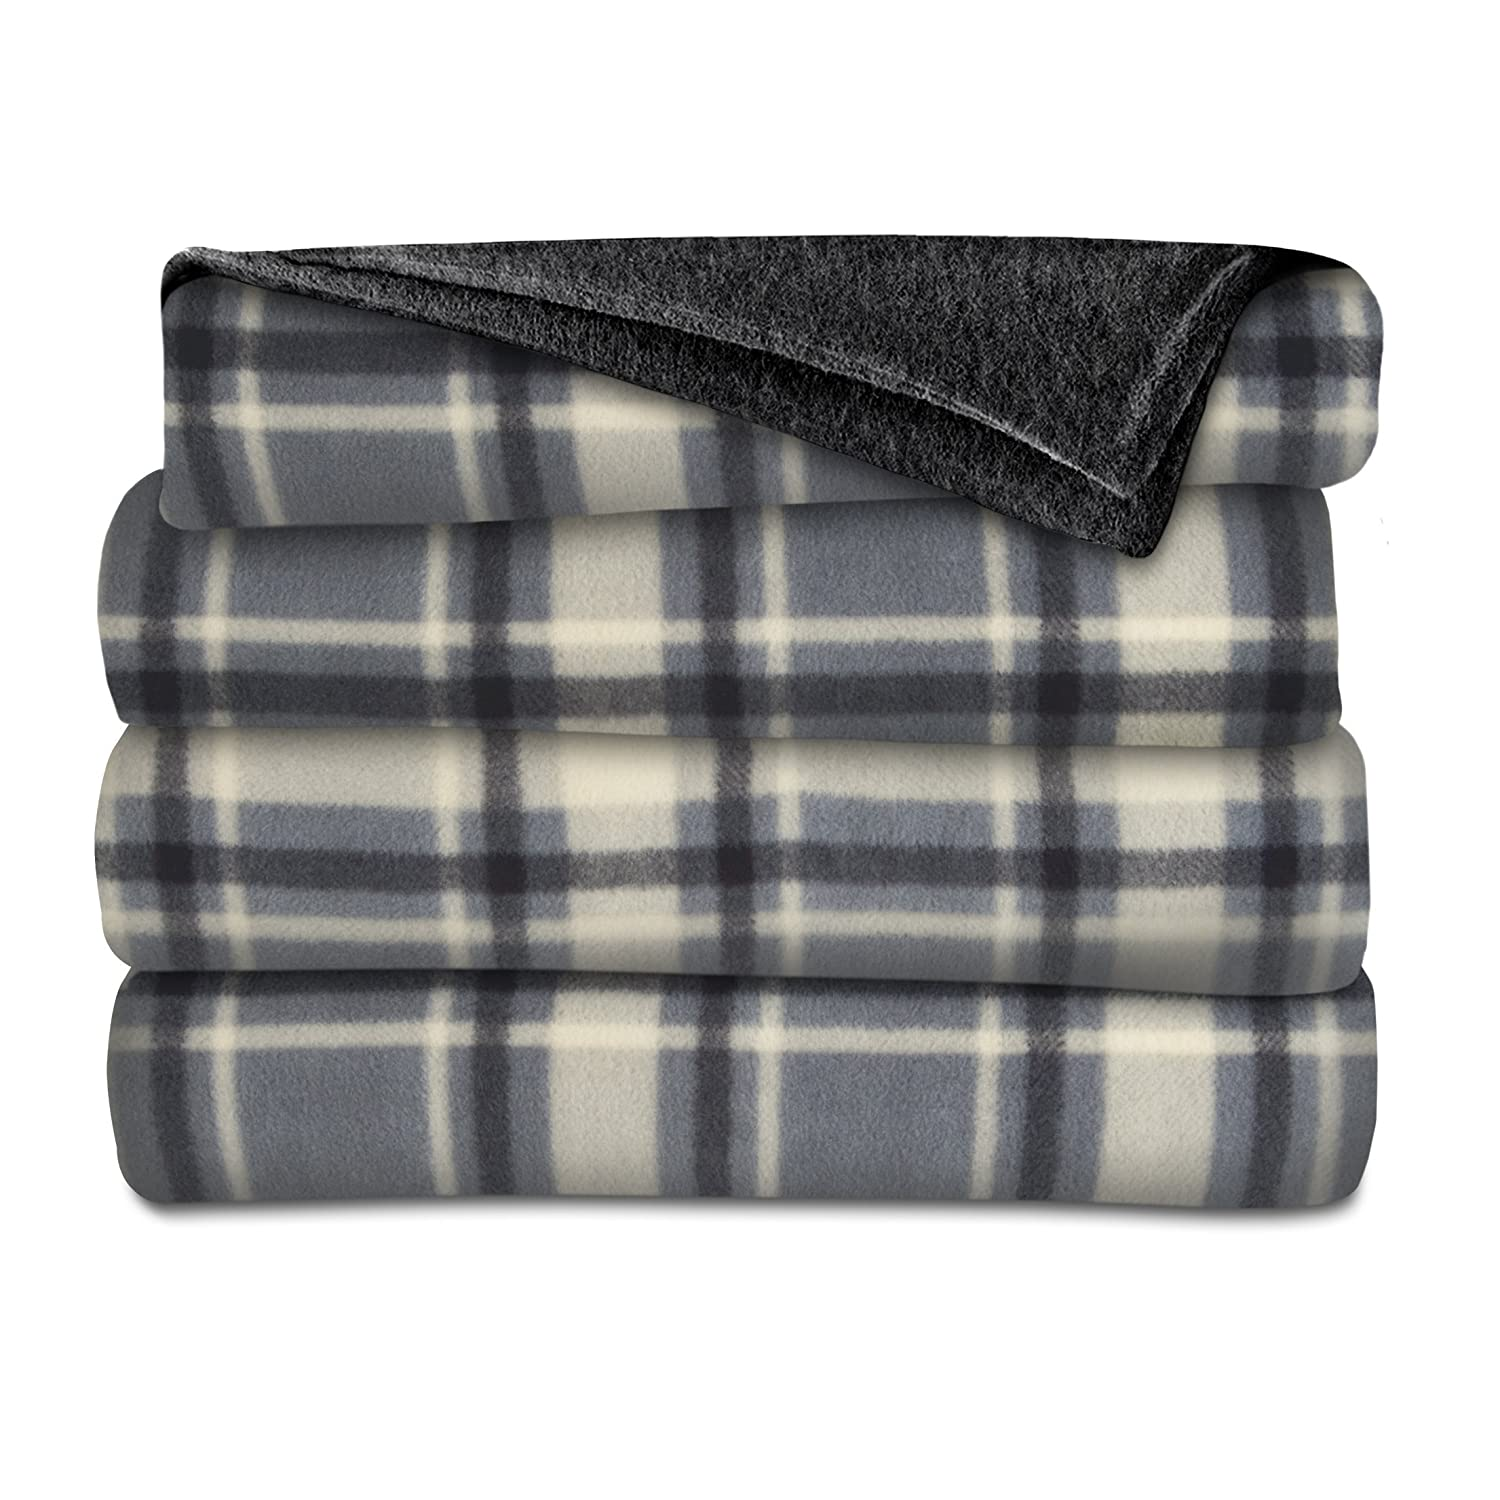 Sunbeam Heated Throw Blanket | Fleece, 3 Heat Settings, Slate/Plaid - TSF8TP-R871-33A00